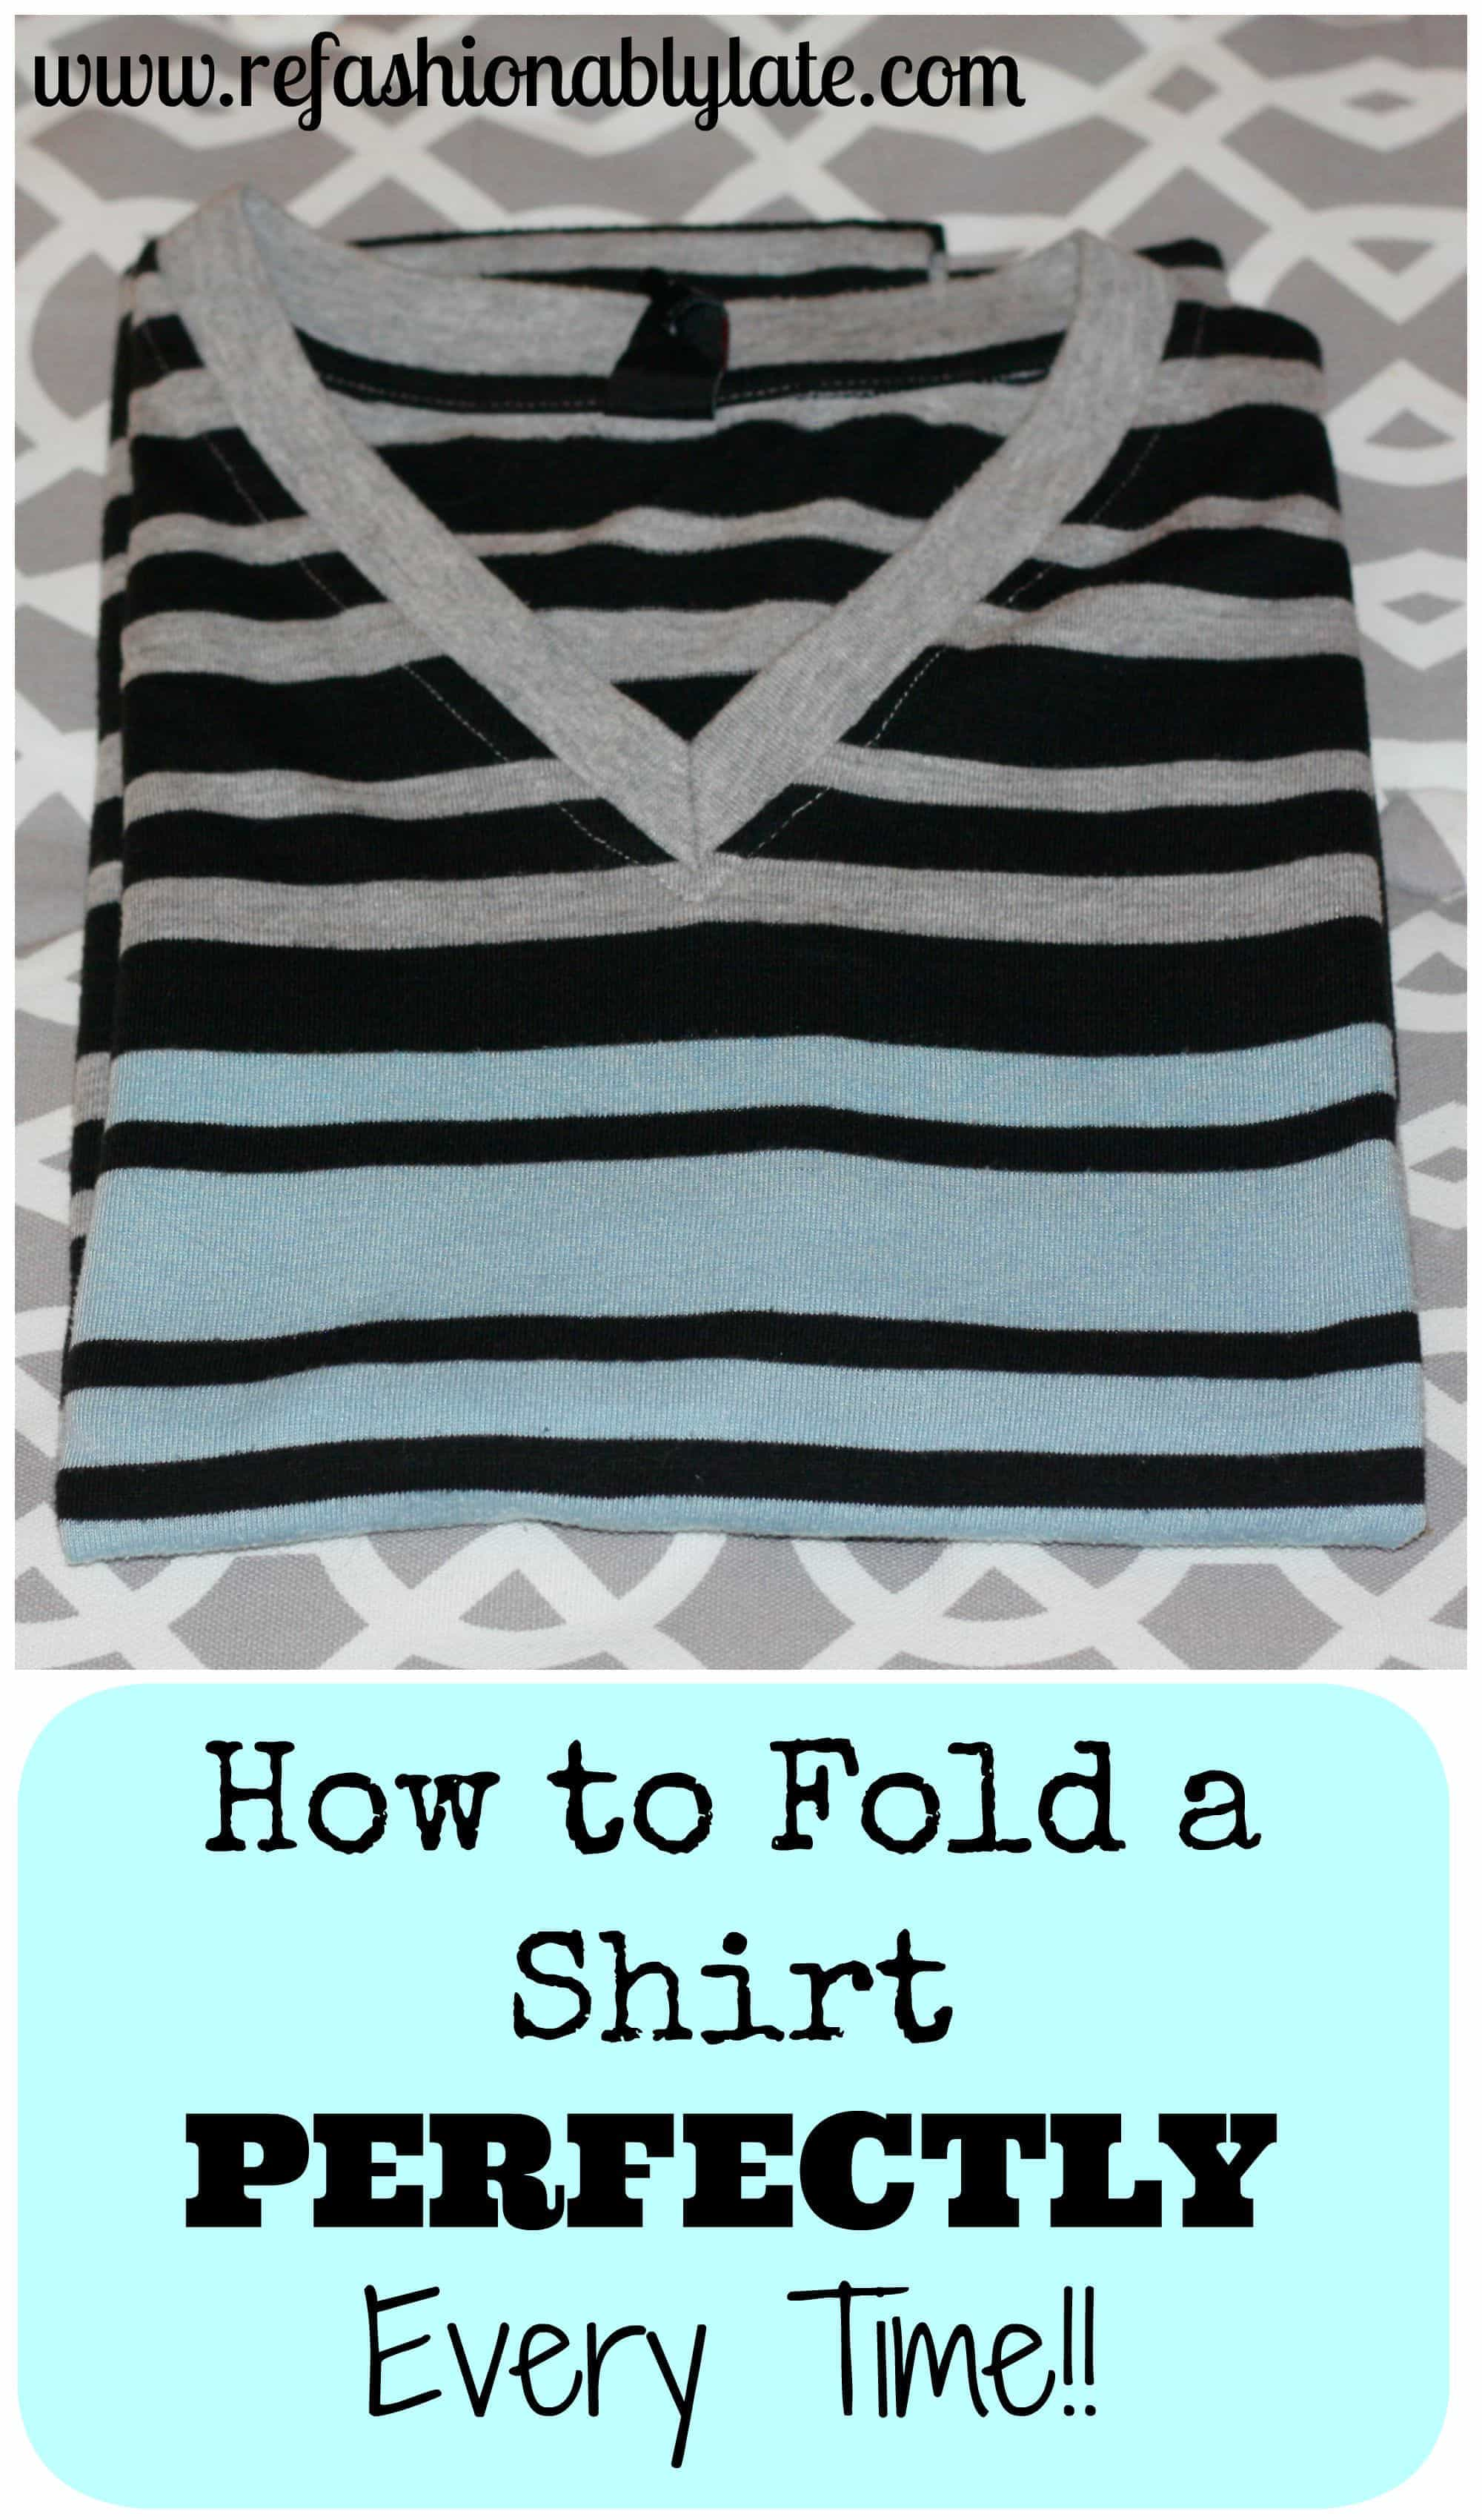 How to Fold Shirts Perfectly Every Time - www.refashionablylate.com